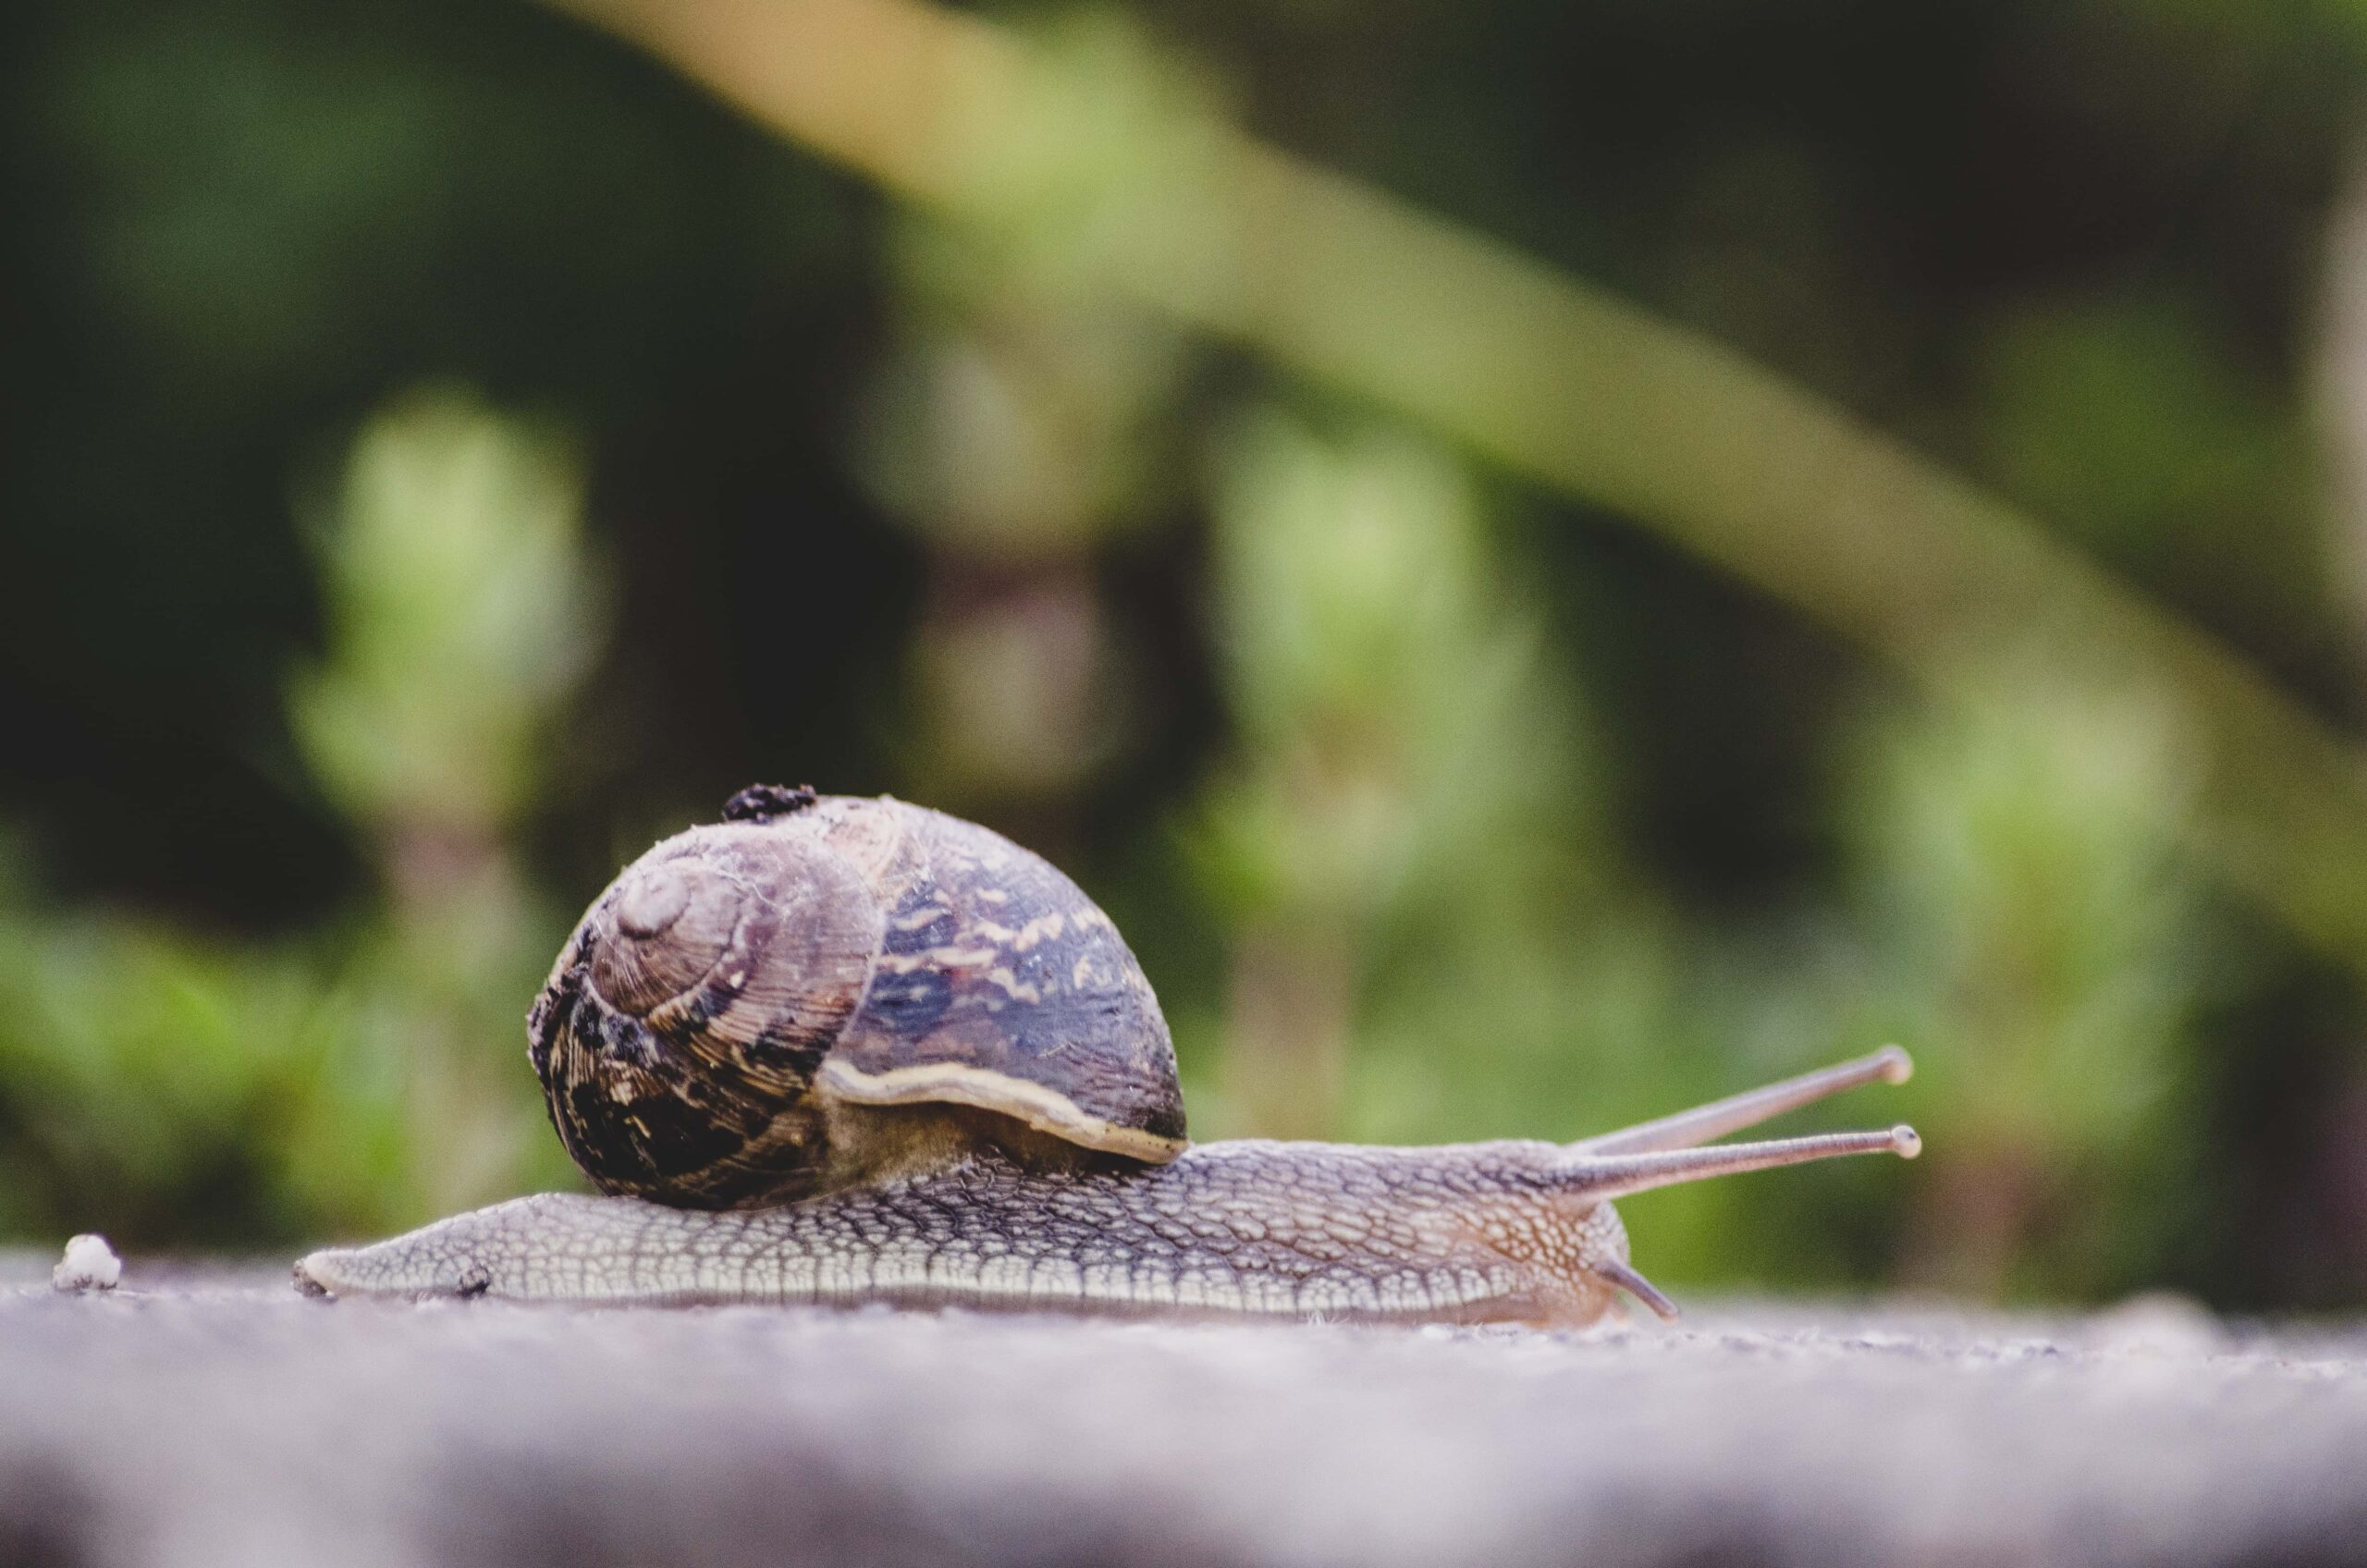 snail against blurred background